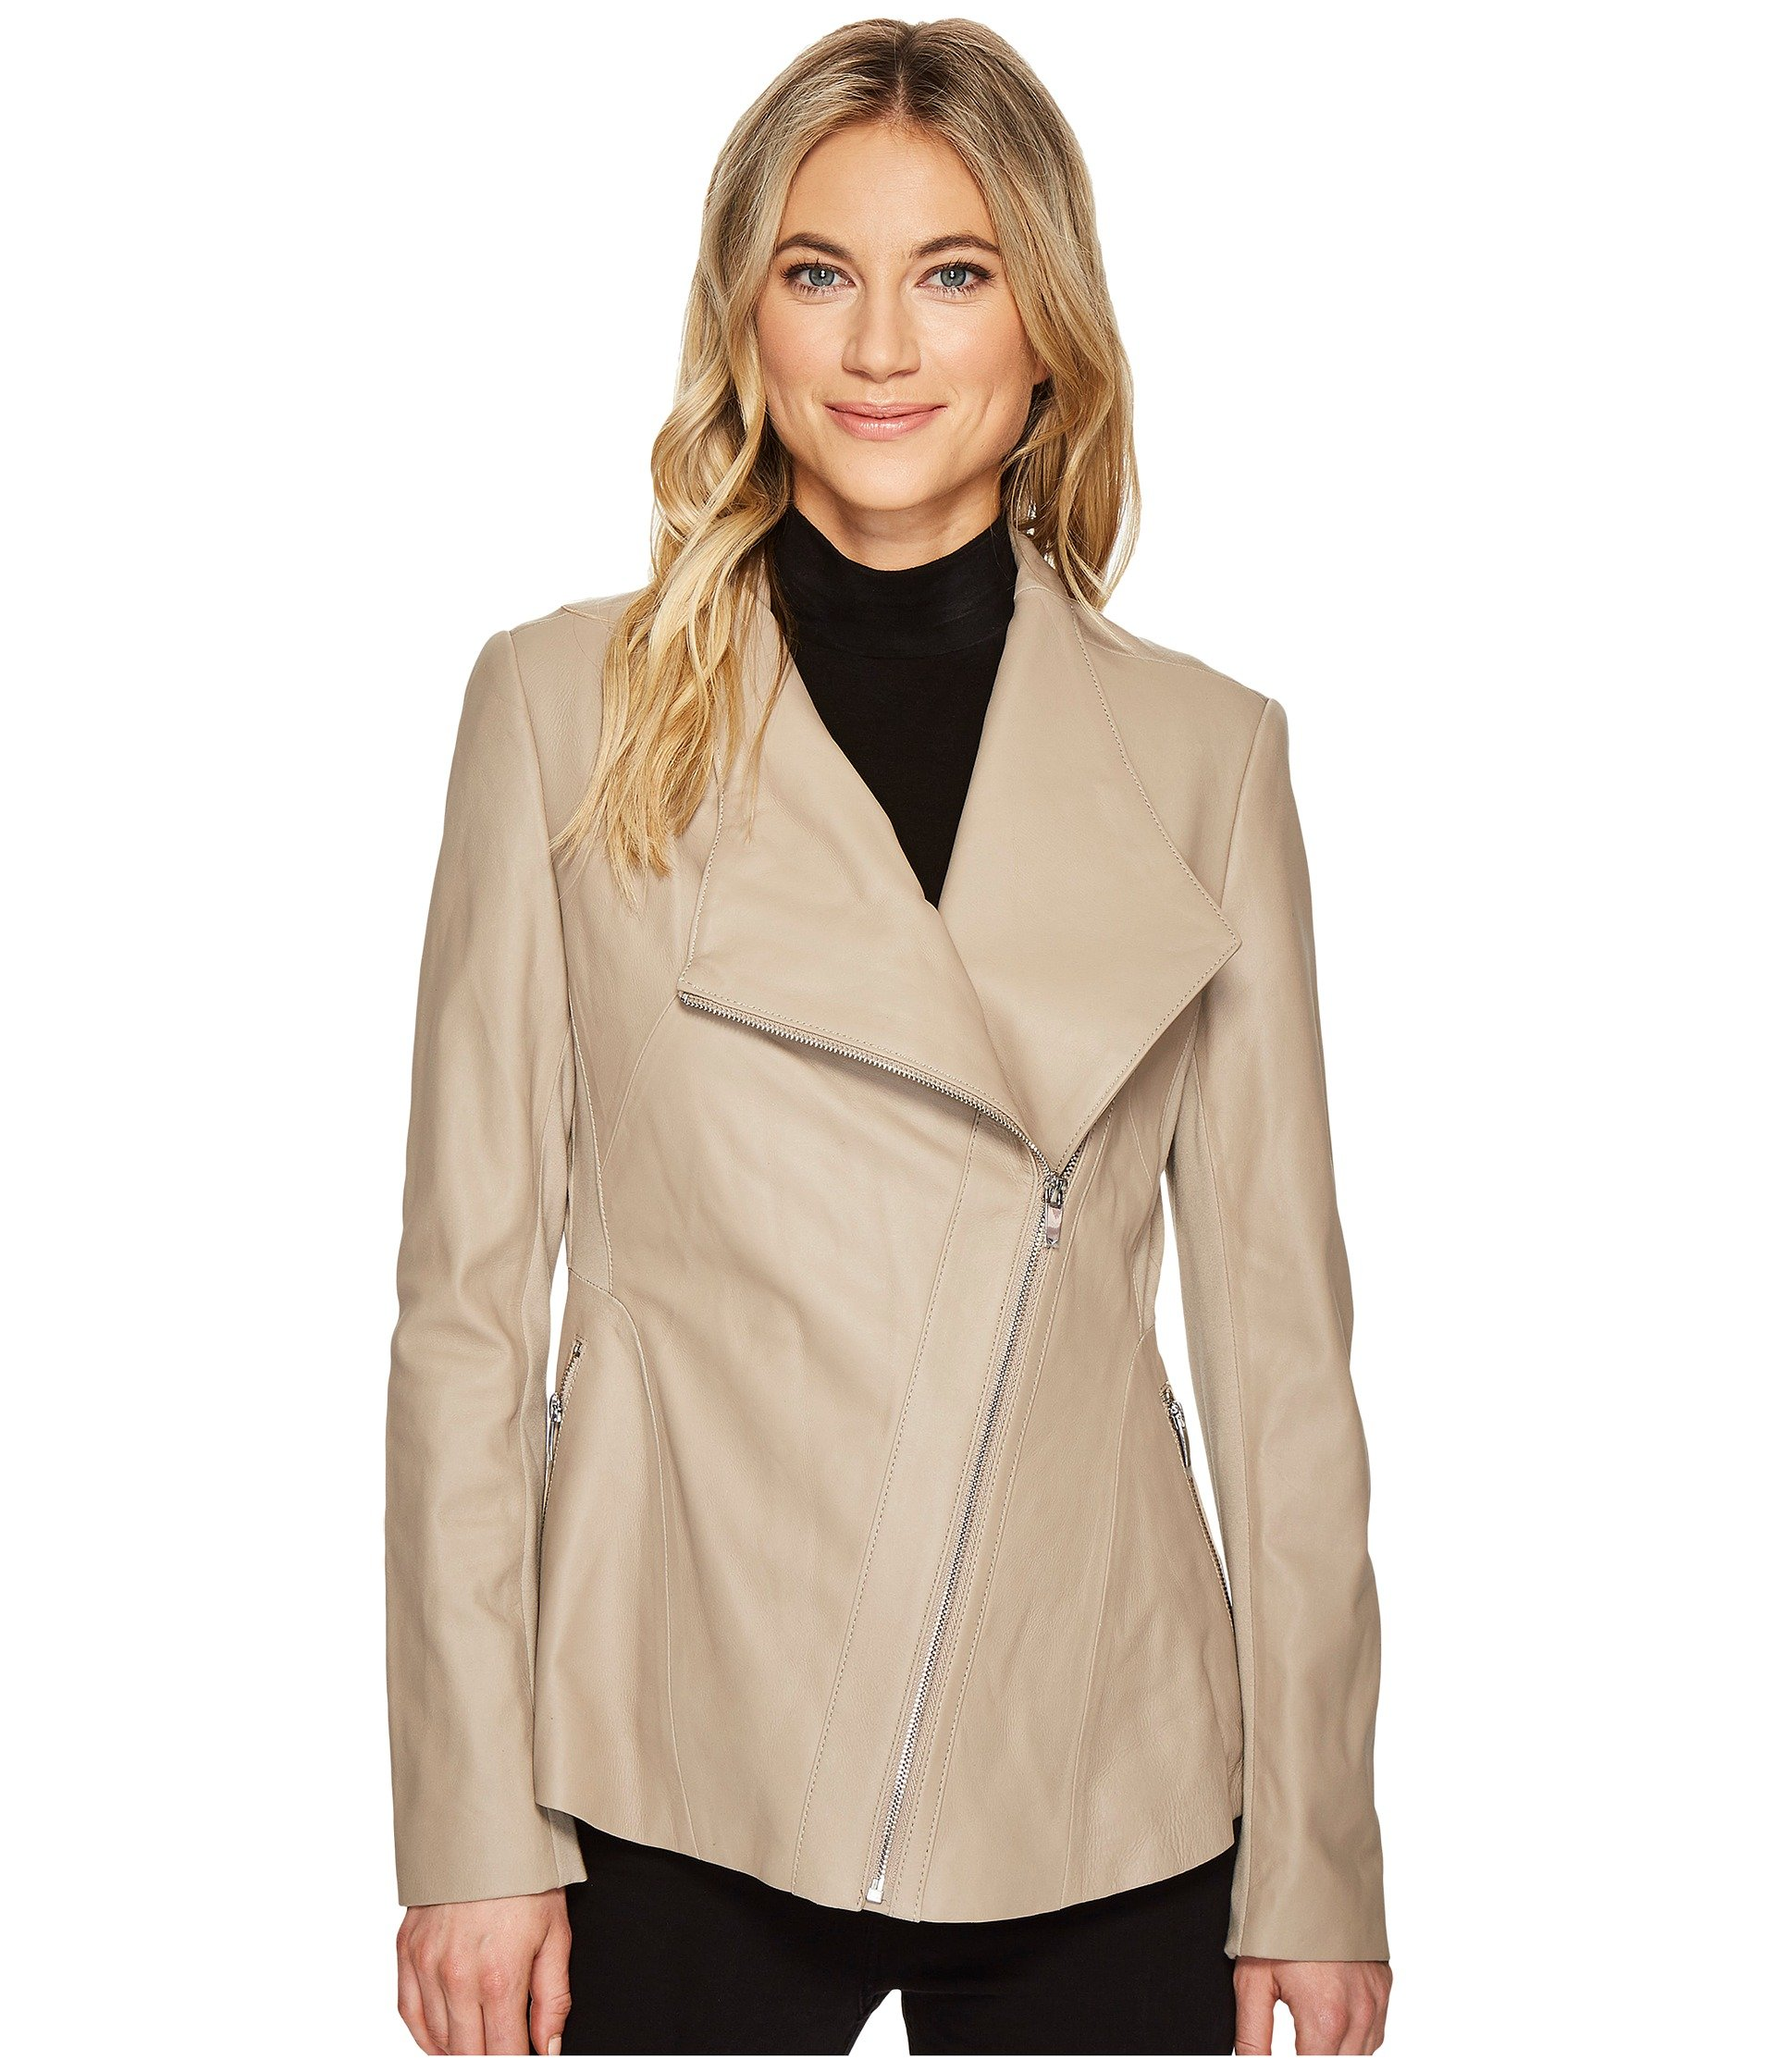 Via Spiga Women's Drape Front Leather Jacket, Taupe, M